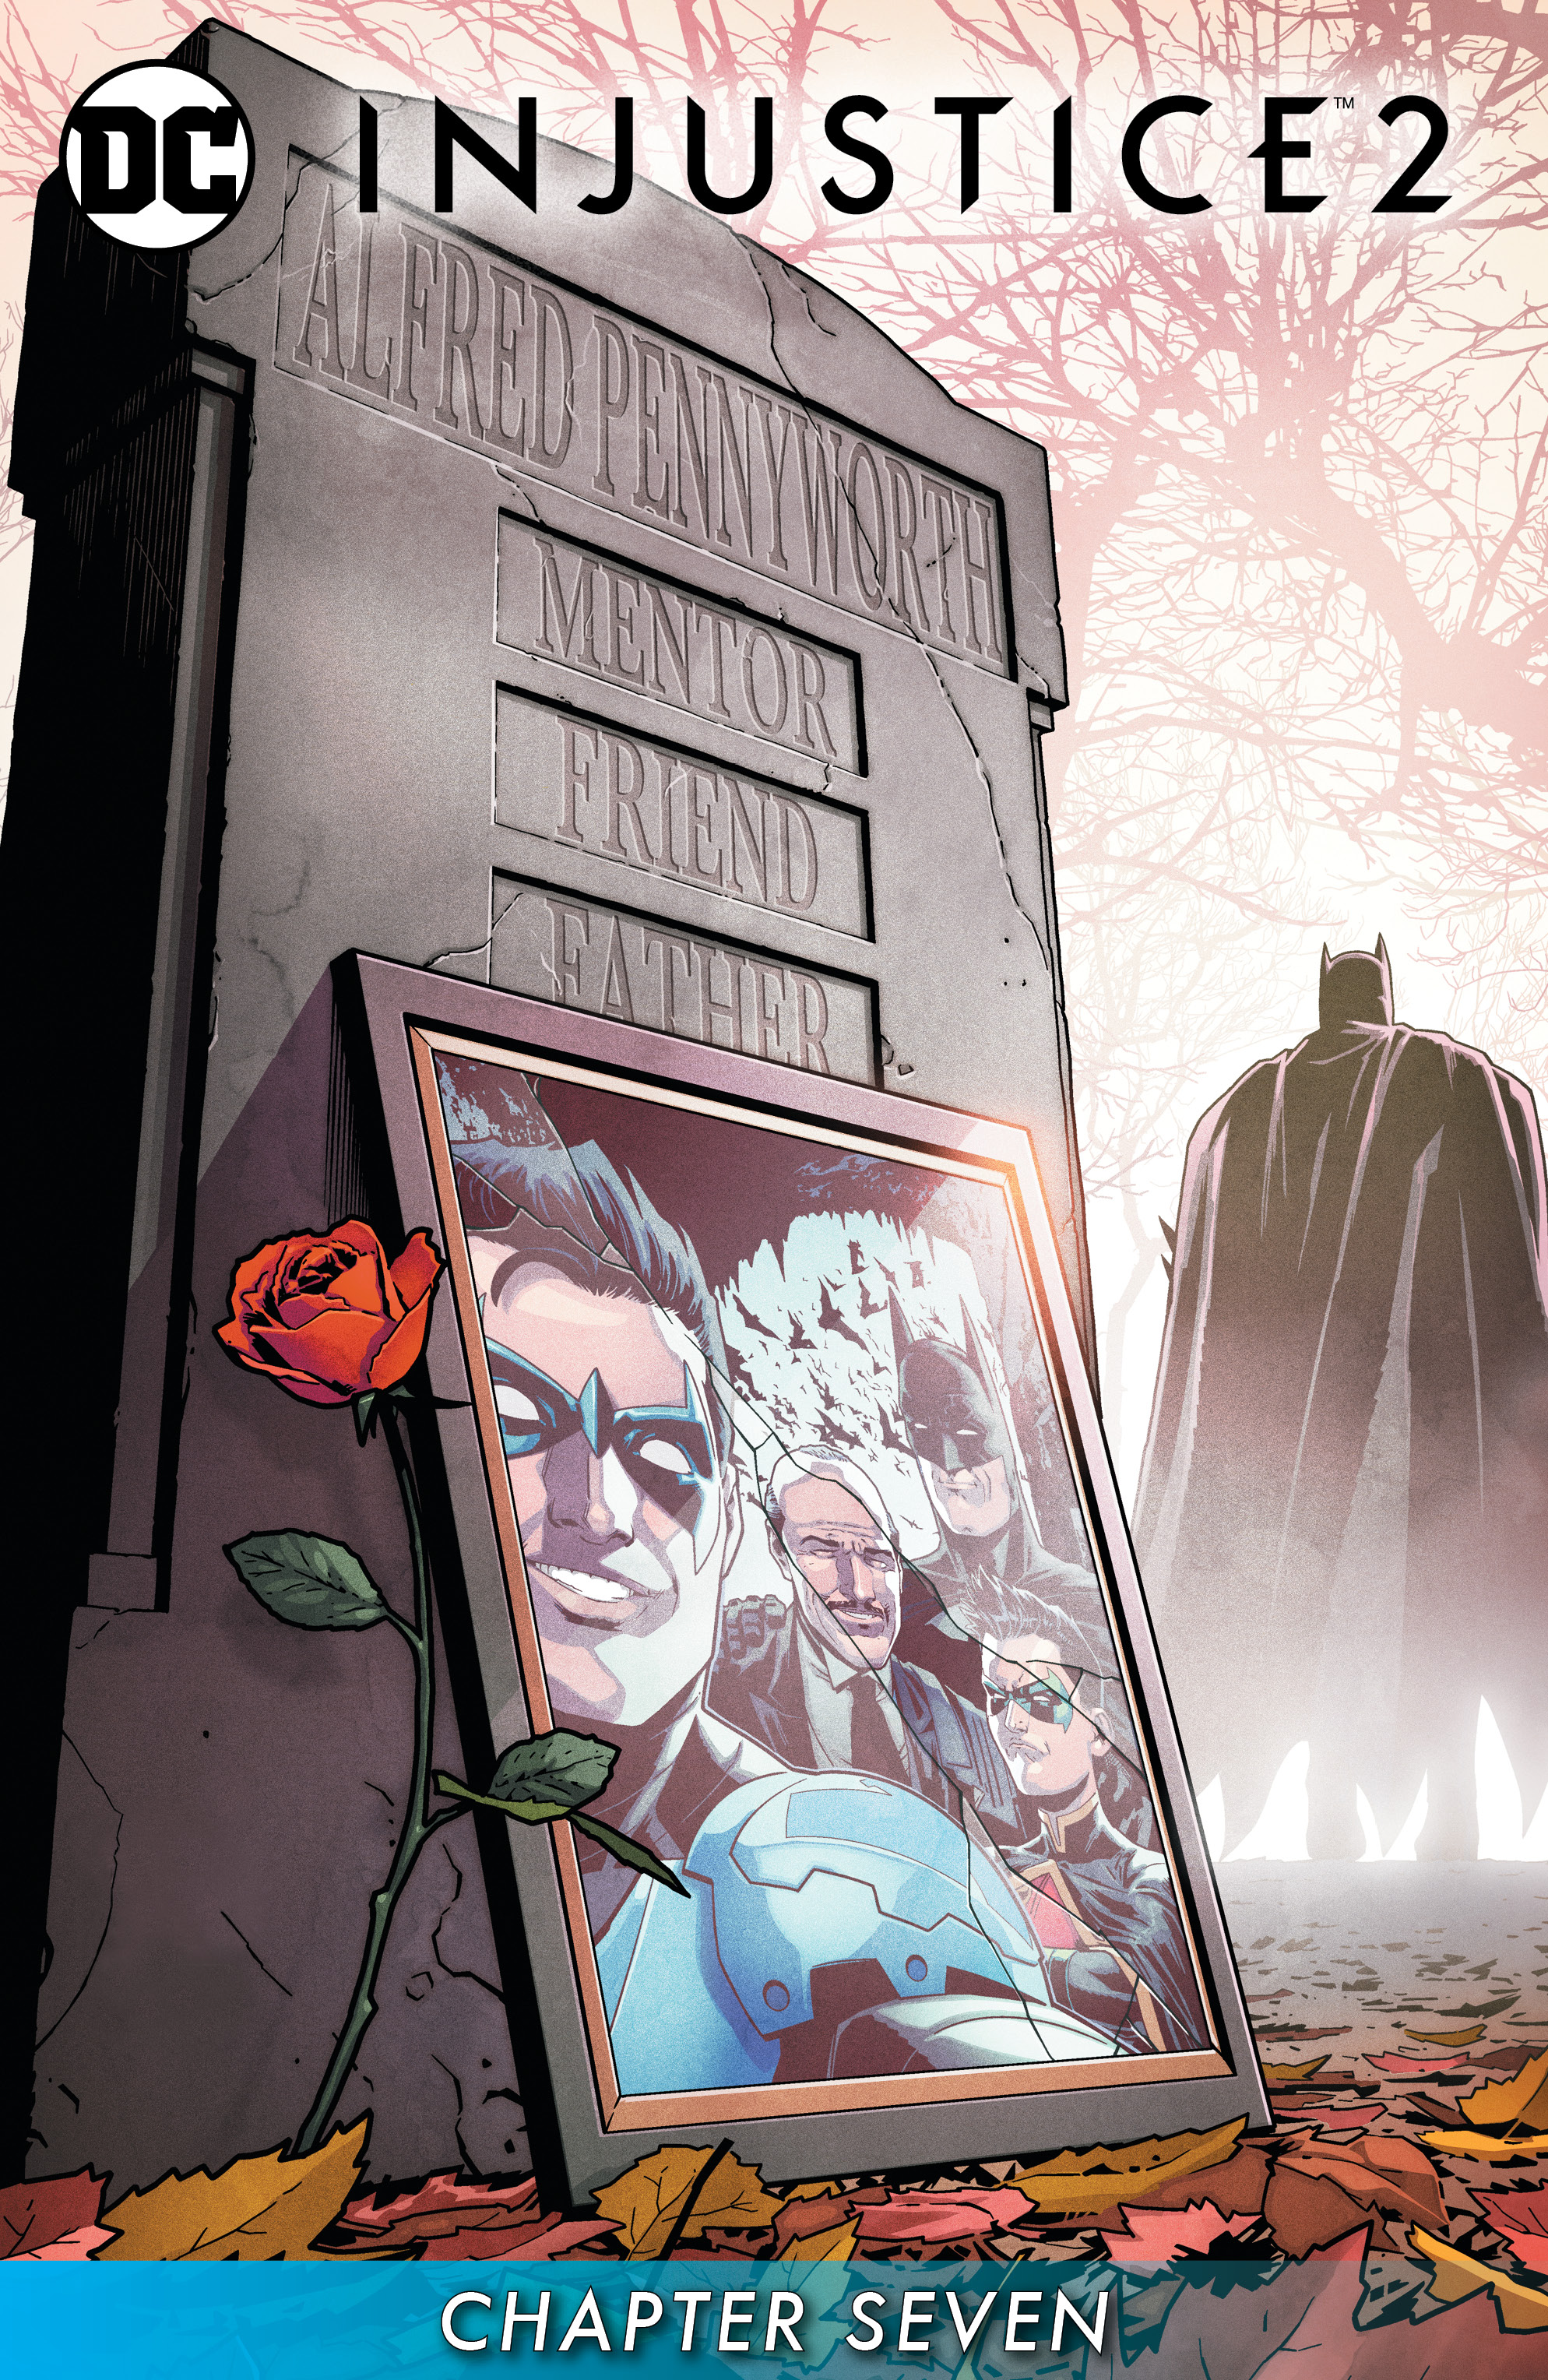 Read online Injustice 2 comic -  Issue #7 - 2